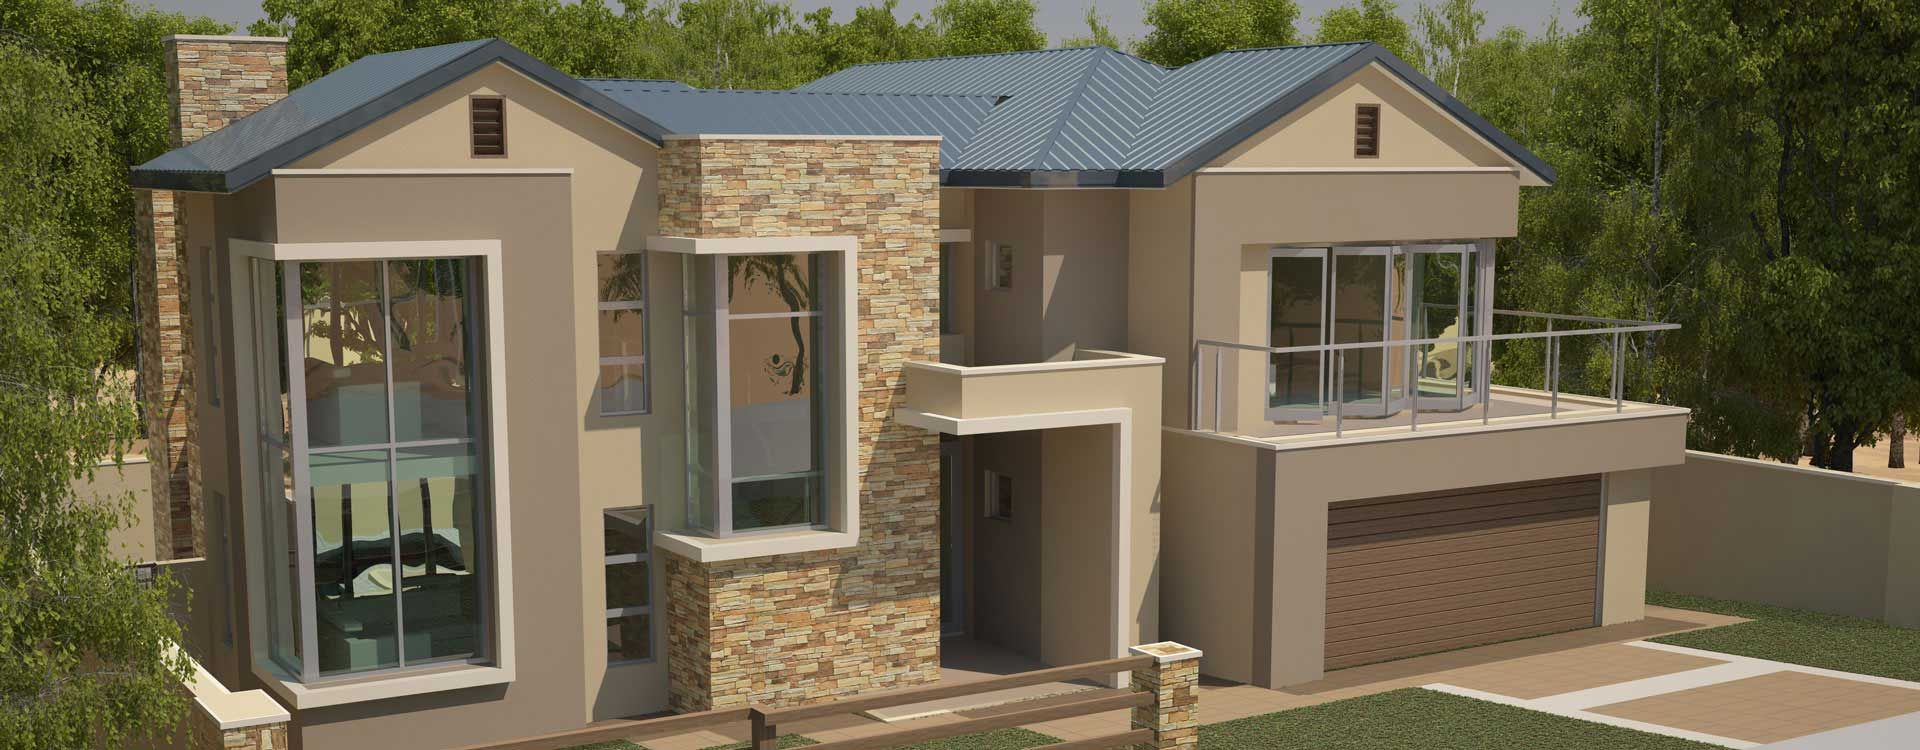 Modern Contemporary Style House Plans 4 Bedroom Double Storey Floor Plans Mo House Plans South Africa Farmhouse Style House Plans Single Storey House Plans